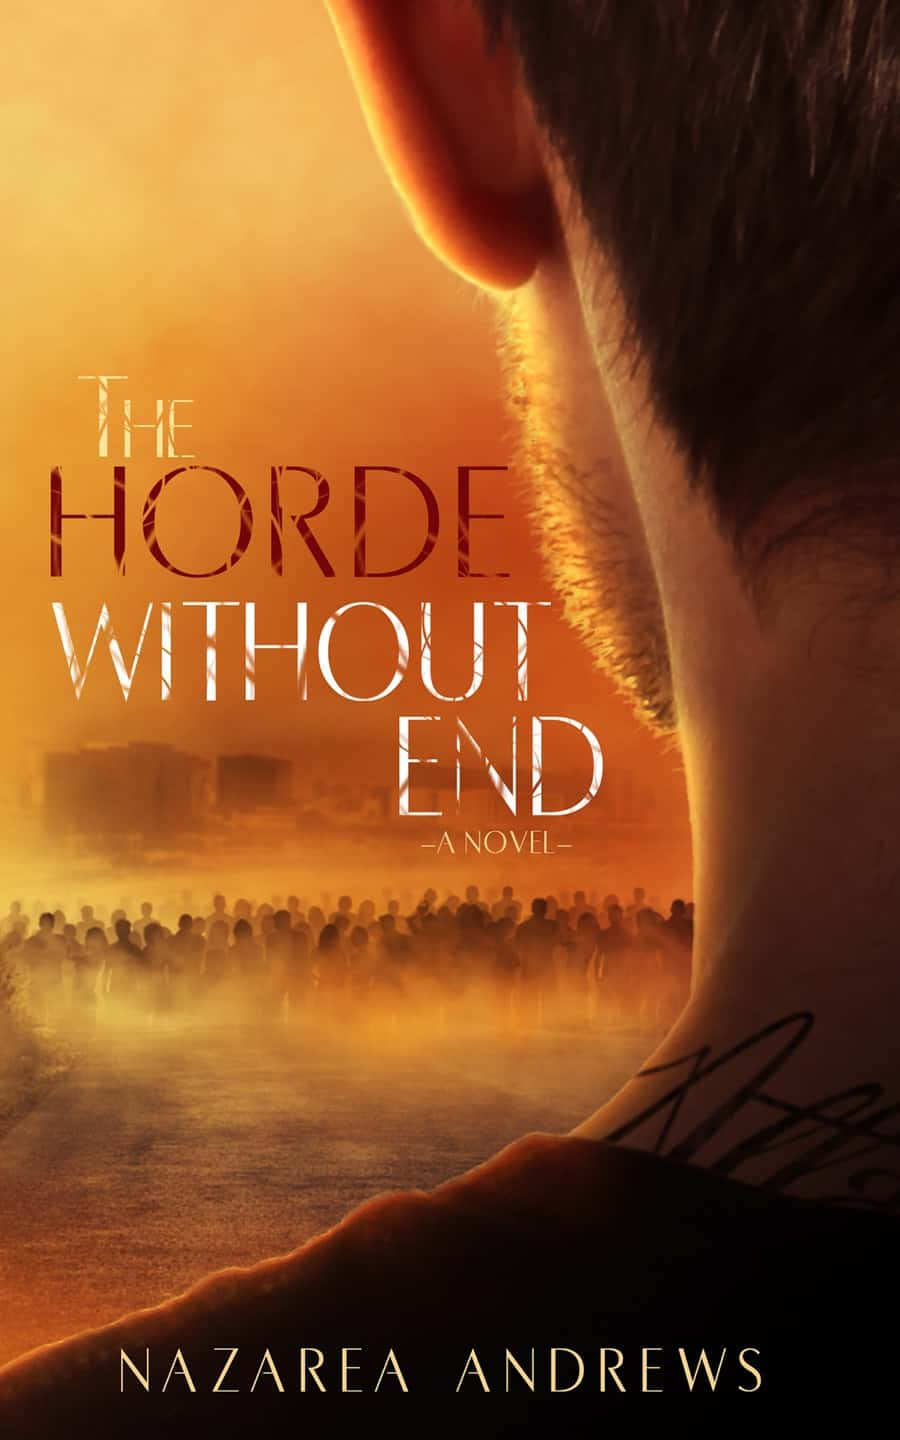 THE HORDE WITHOUT END by Nazarea Andrews